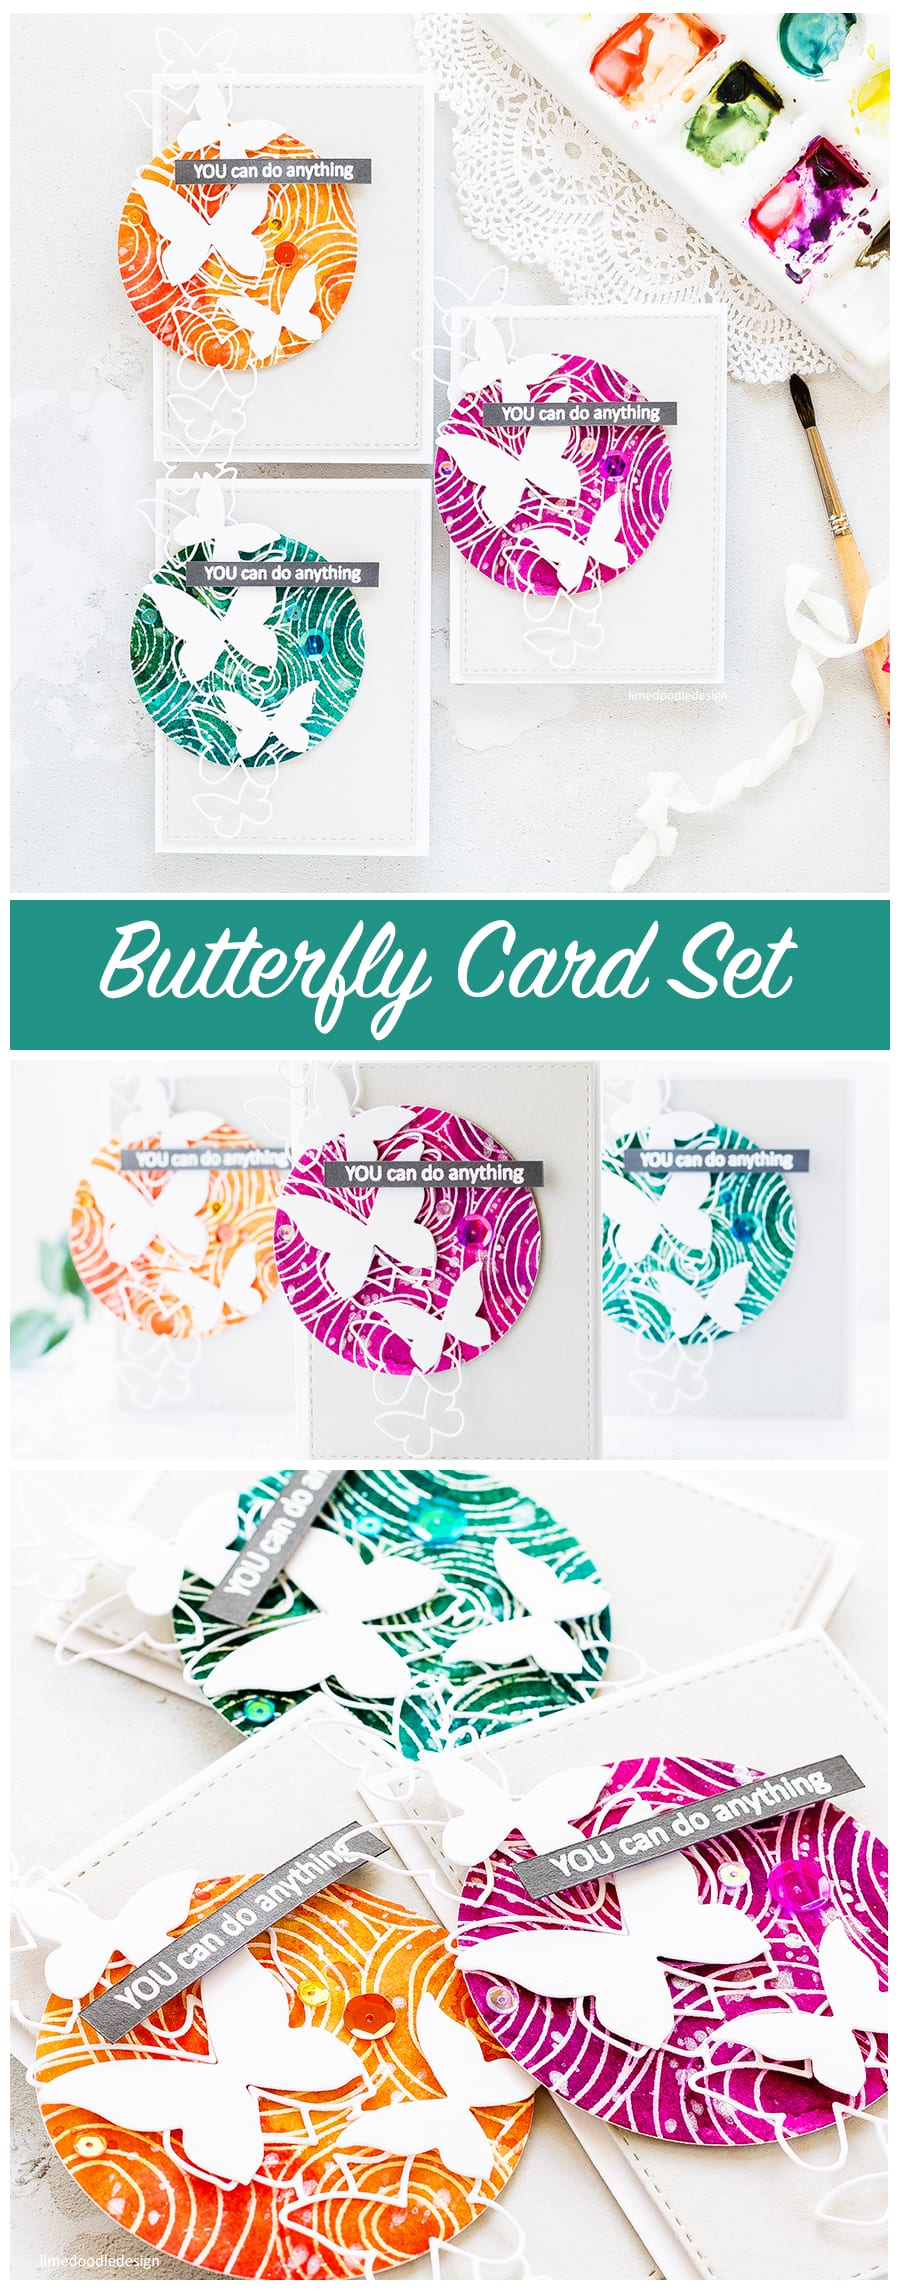 Set of three butterfly encouragement cards by Debby Hughes using a colourful watercoloured background circle to set off the white die cut butterflies. Find out more about these cards by clicking on the following link: http://limedoodledesign.com/2017/04/you-can-do-anything-butterfly-encouragement-card-set/